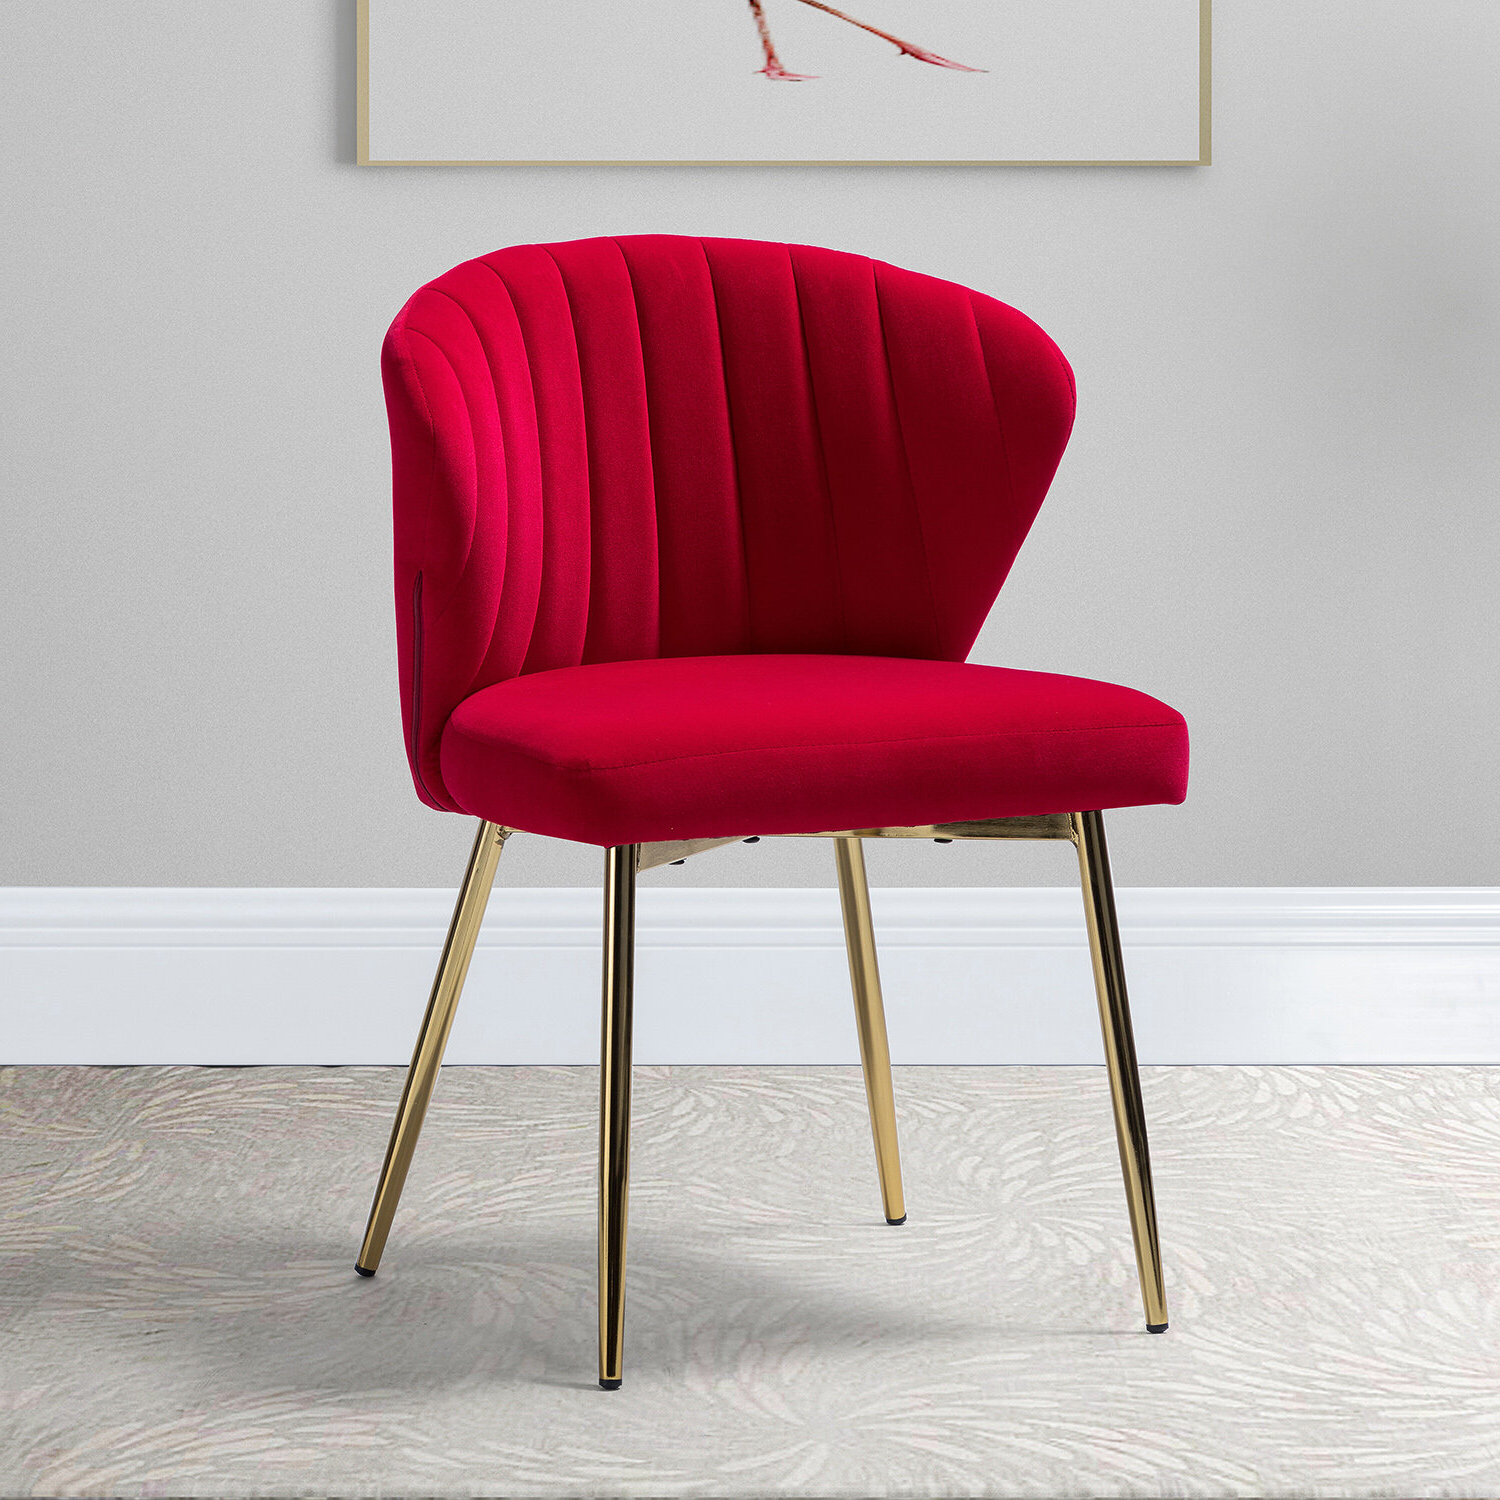 Widely Used Beige & Red Accent Chairs You'll Love In (View 7 of 20)